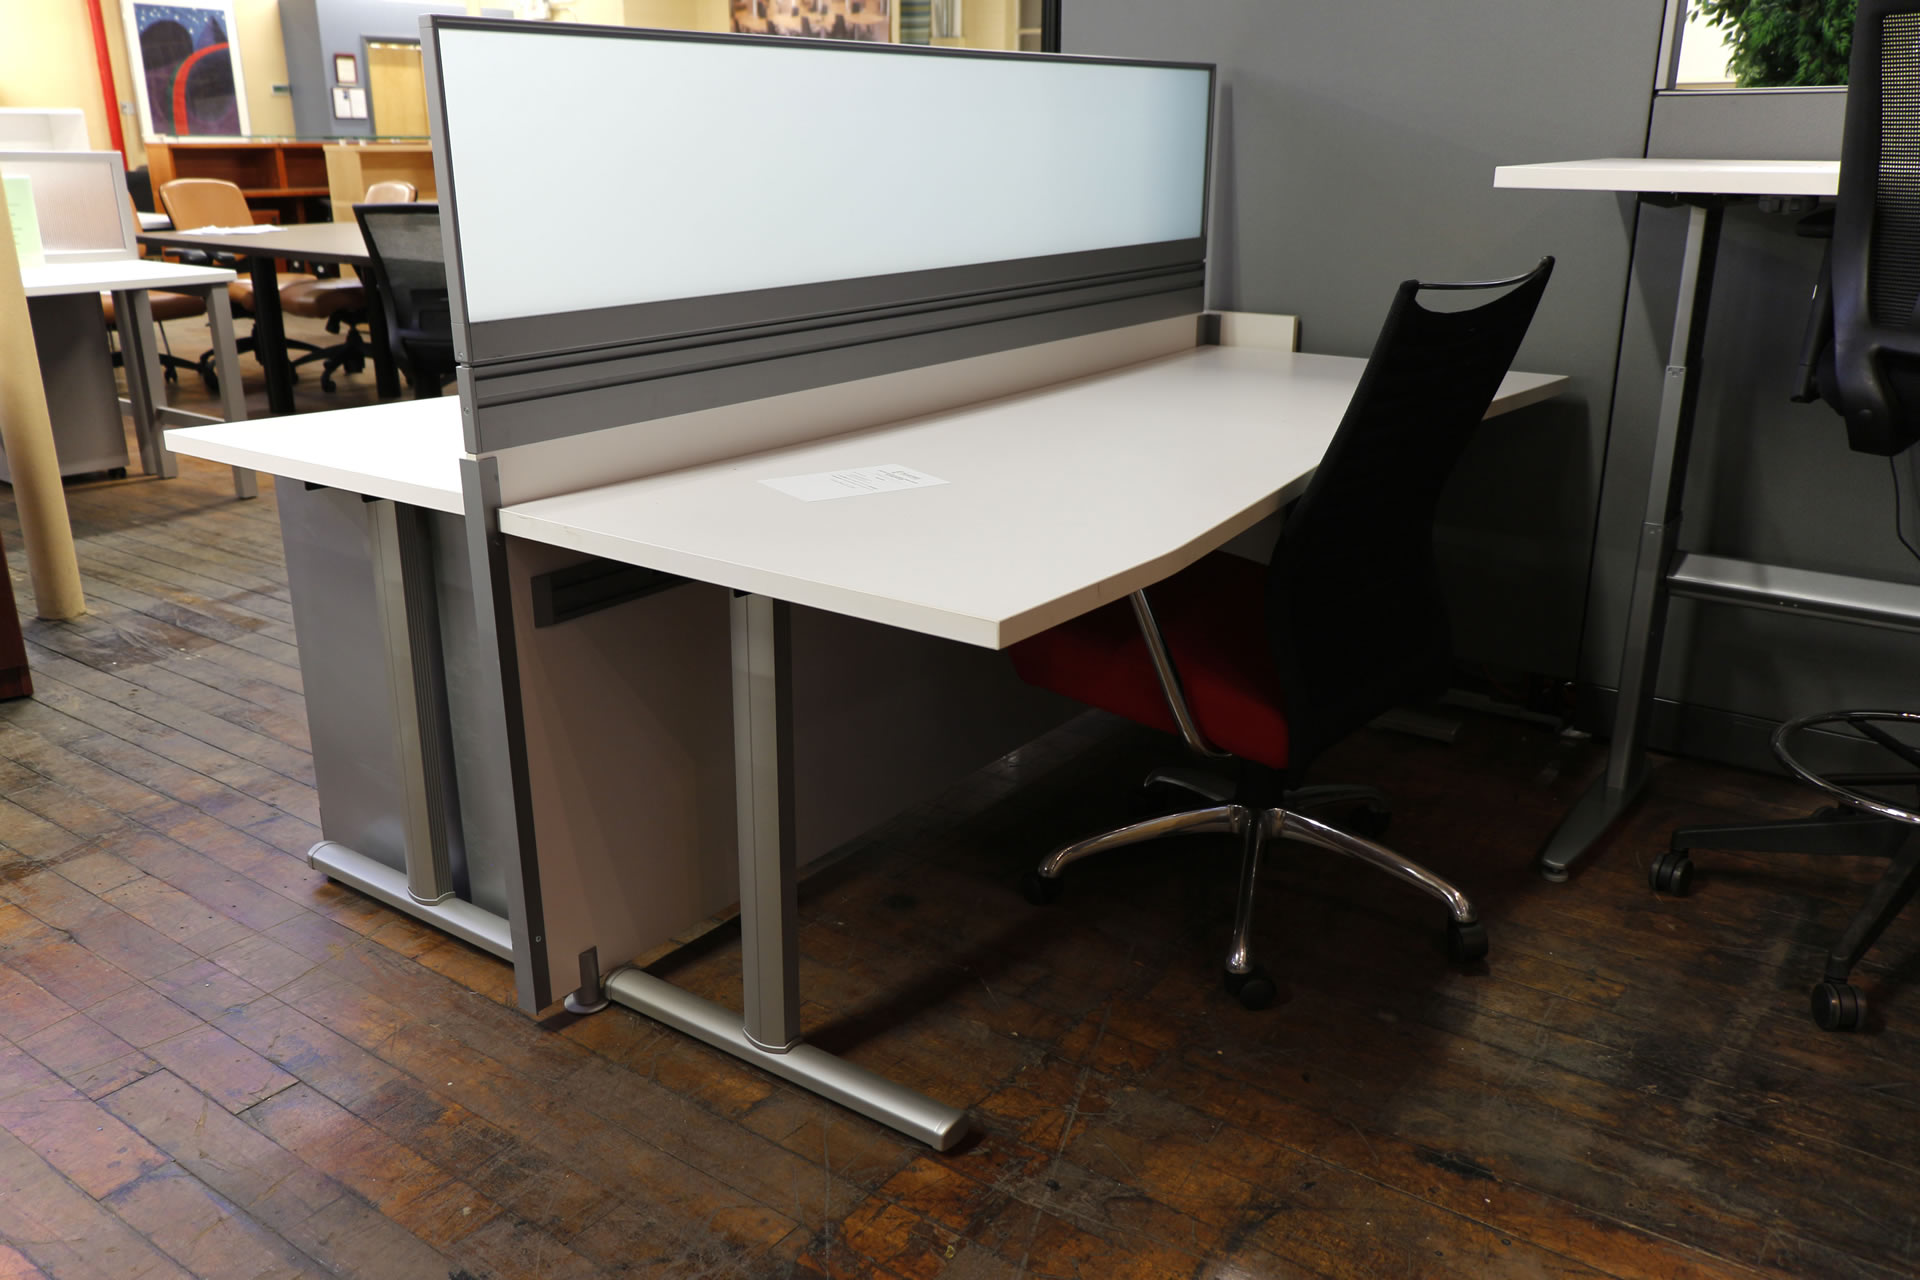 peartreeofficefurniture_peartreeofficefurniture_mg_4939.jpg